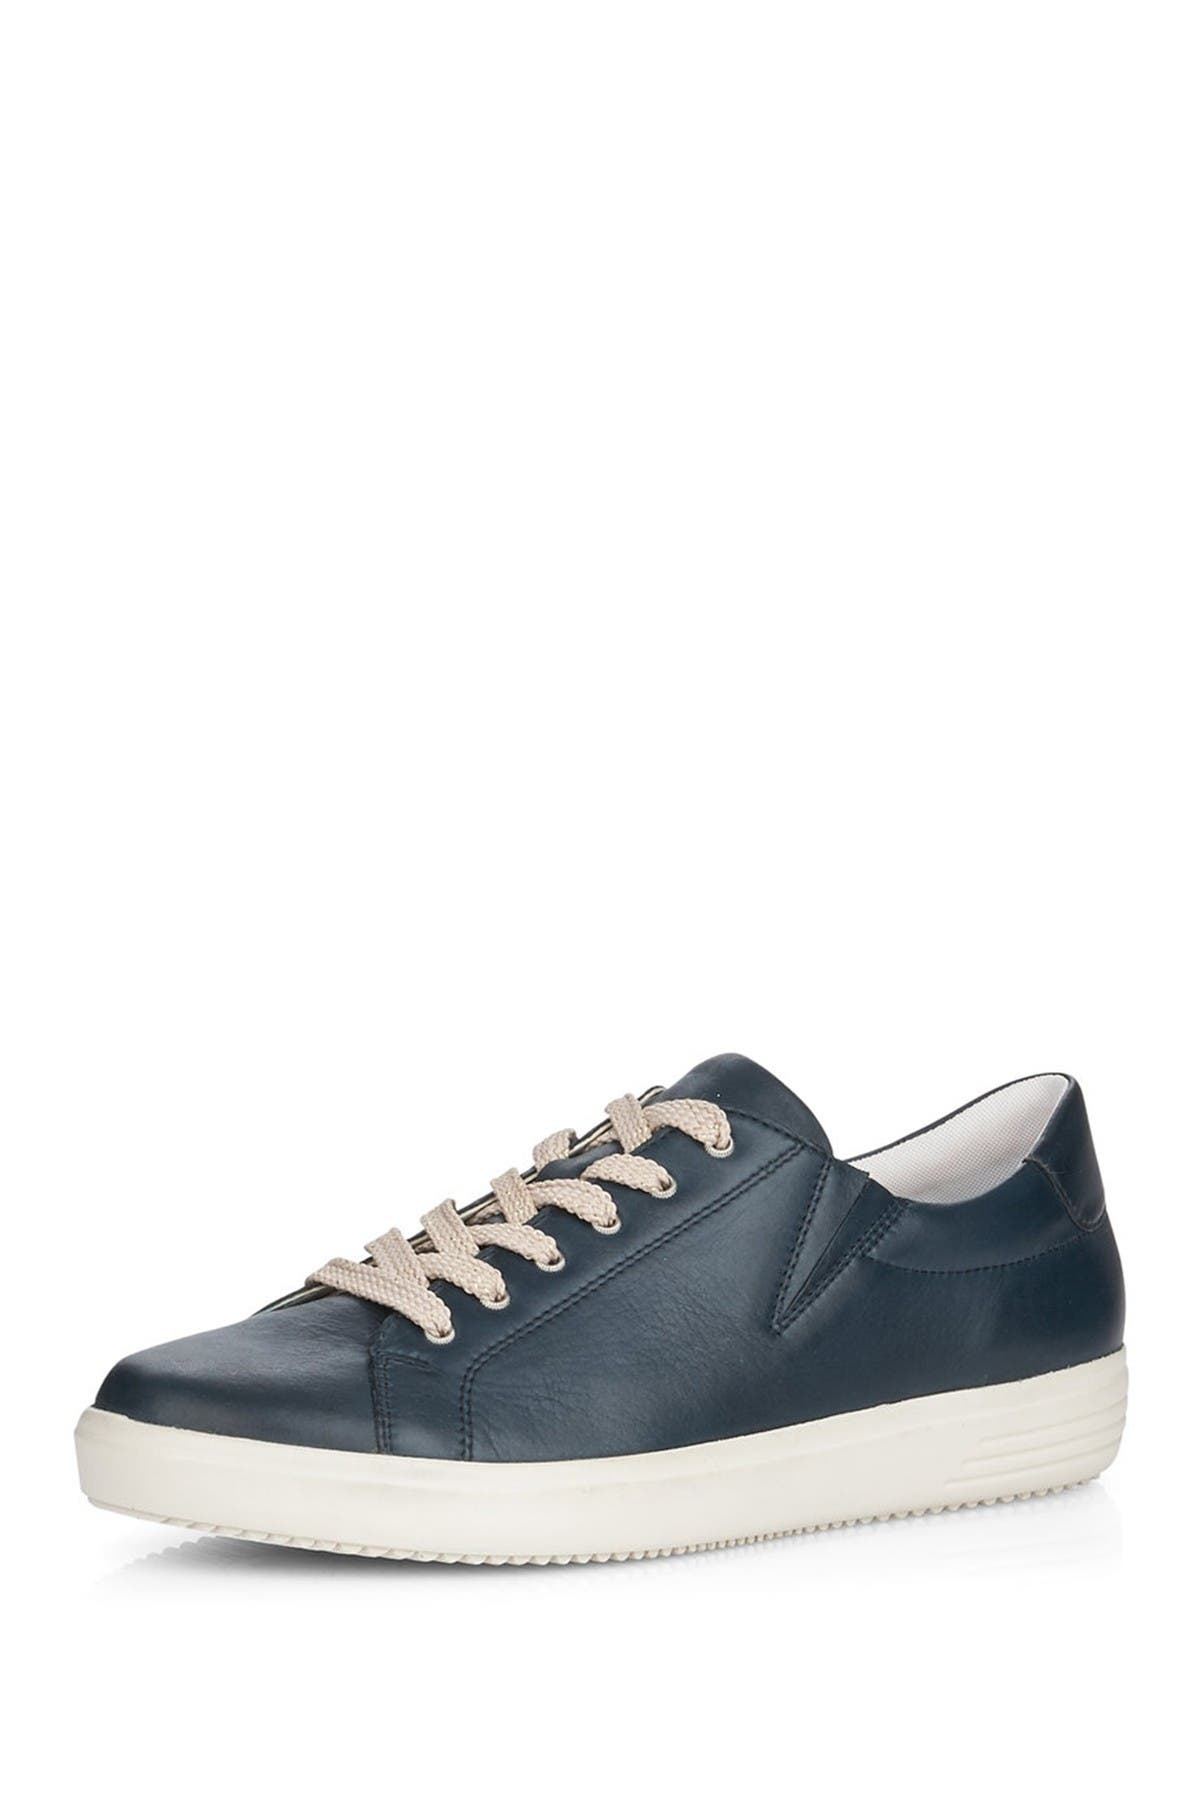 Image of Remonte Cecilia Lace-Up Sneaker